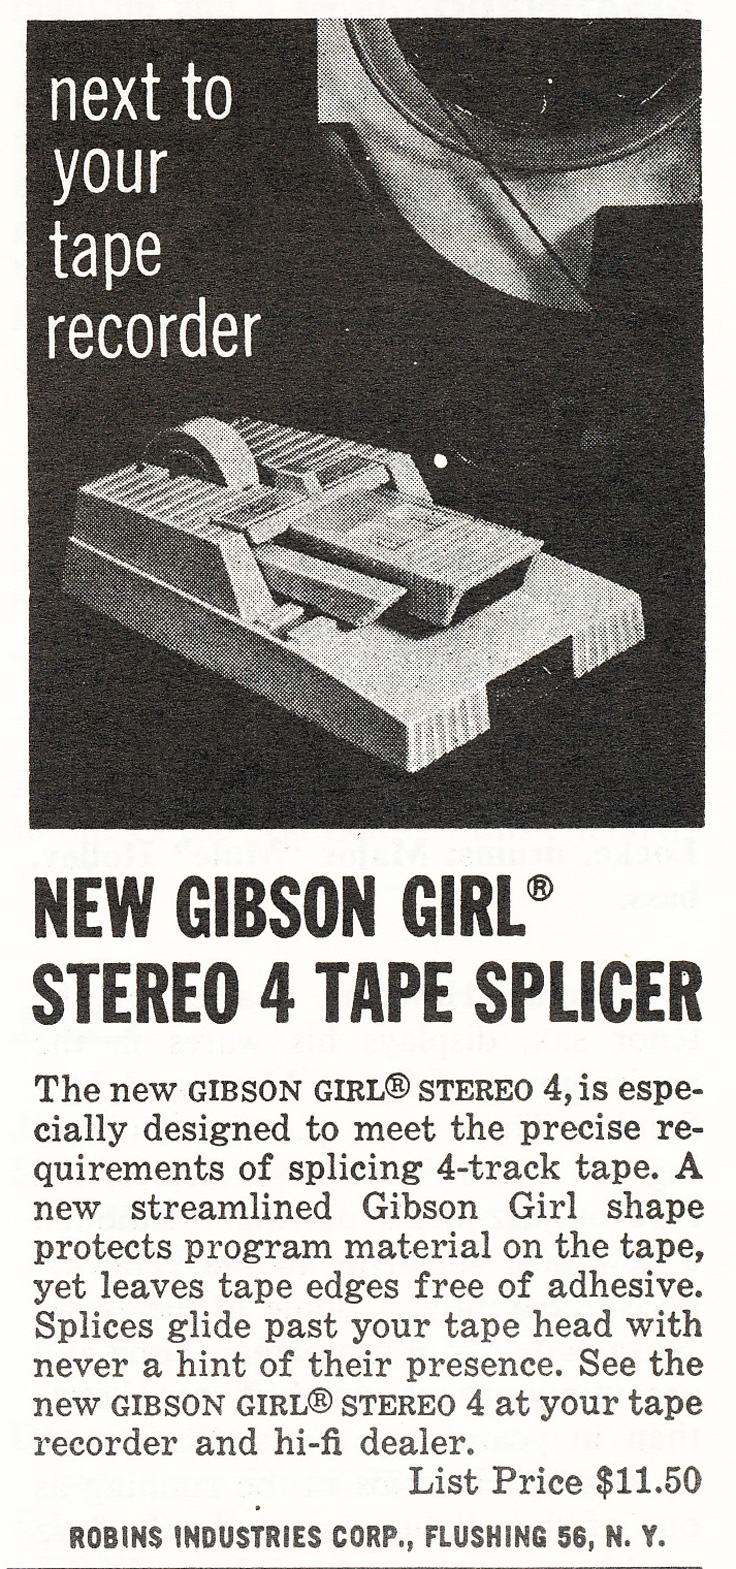 1964 ad for the Robins Gibson Girl reel to reel recording tape splicer in Reel2ReelTexas.com's vintage recording collection